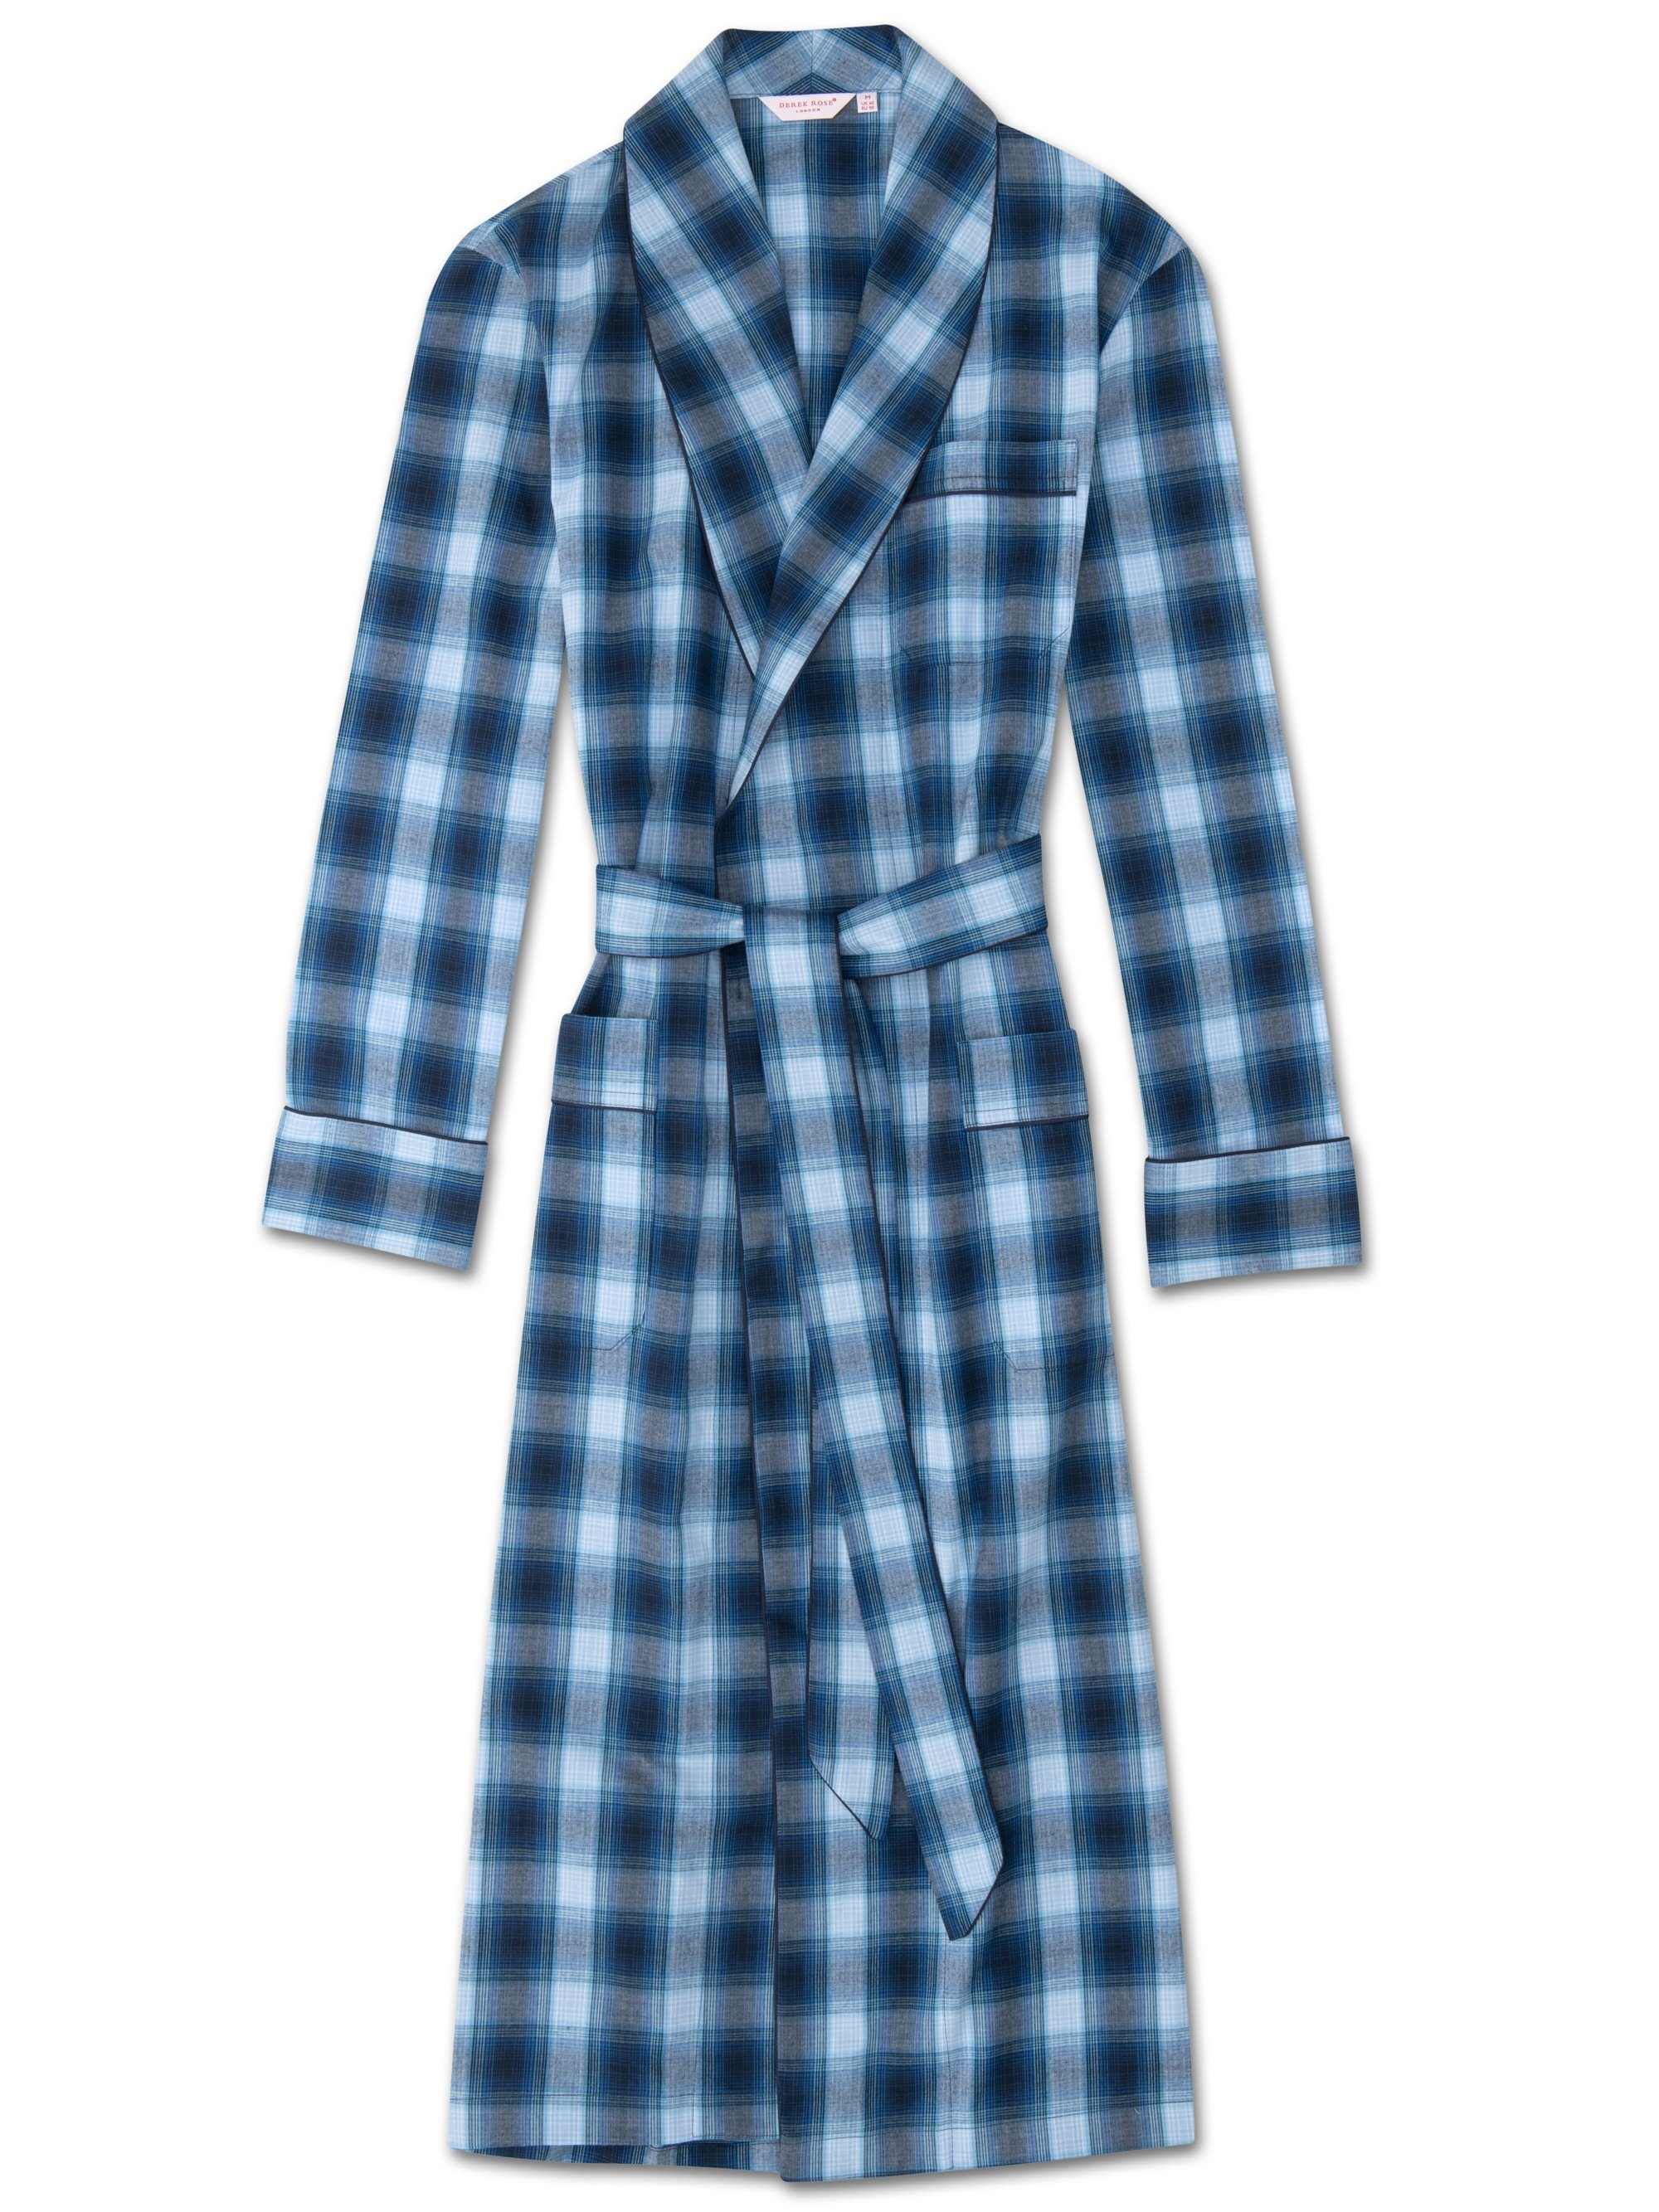 9200f10001d Men s Piped Dressing Gown Ranga 36 Brushed Cotton Check Blue